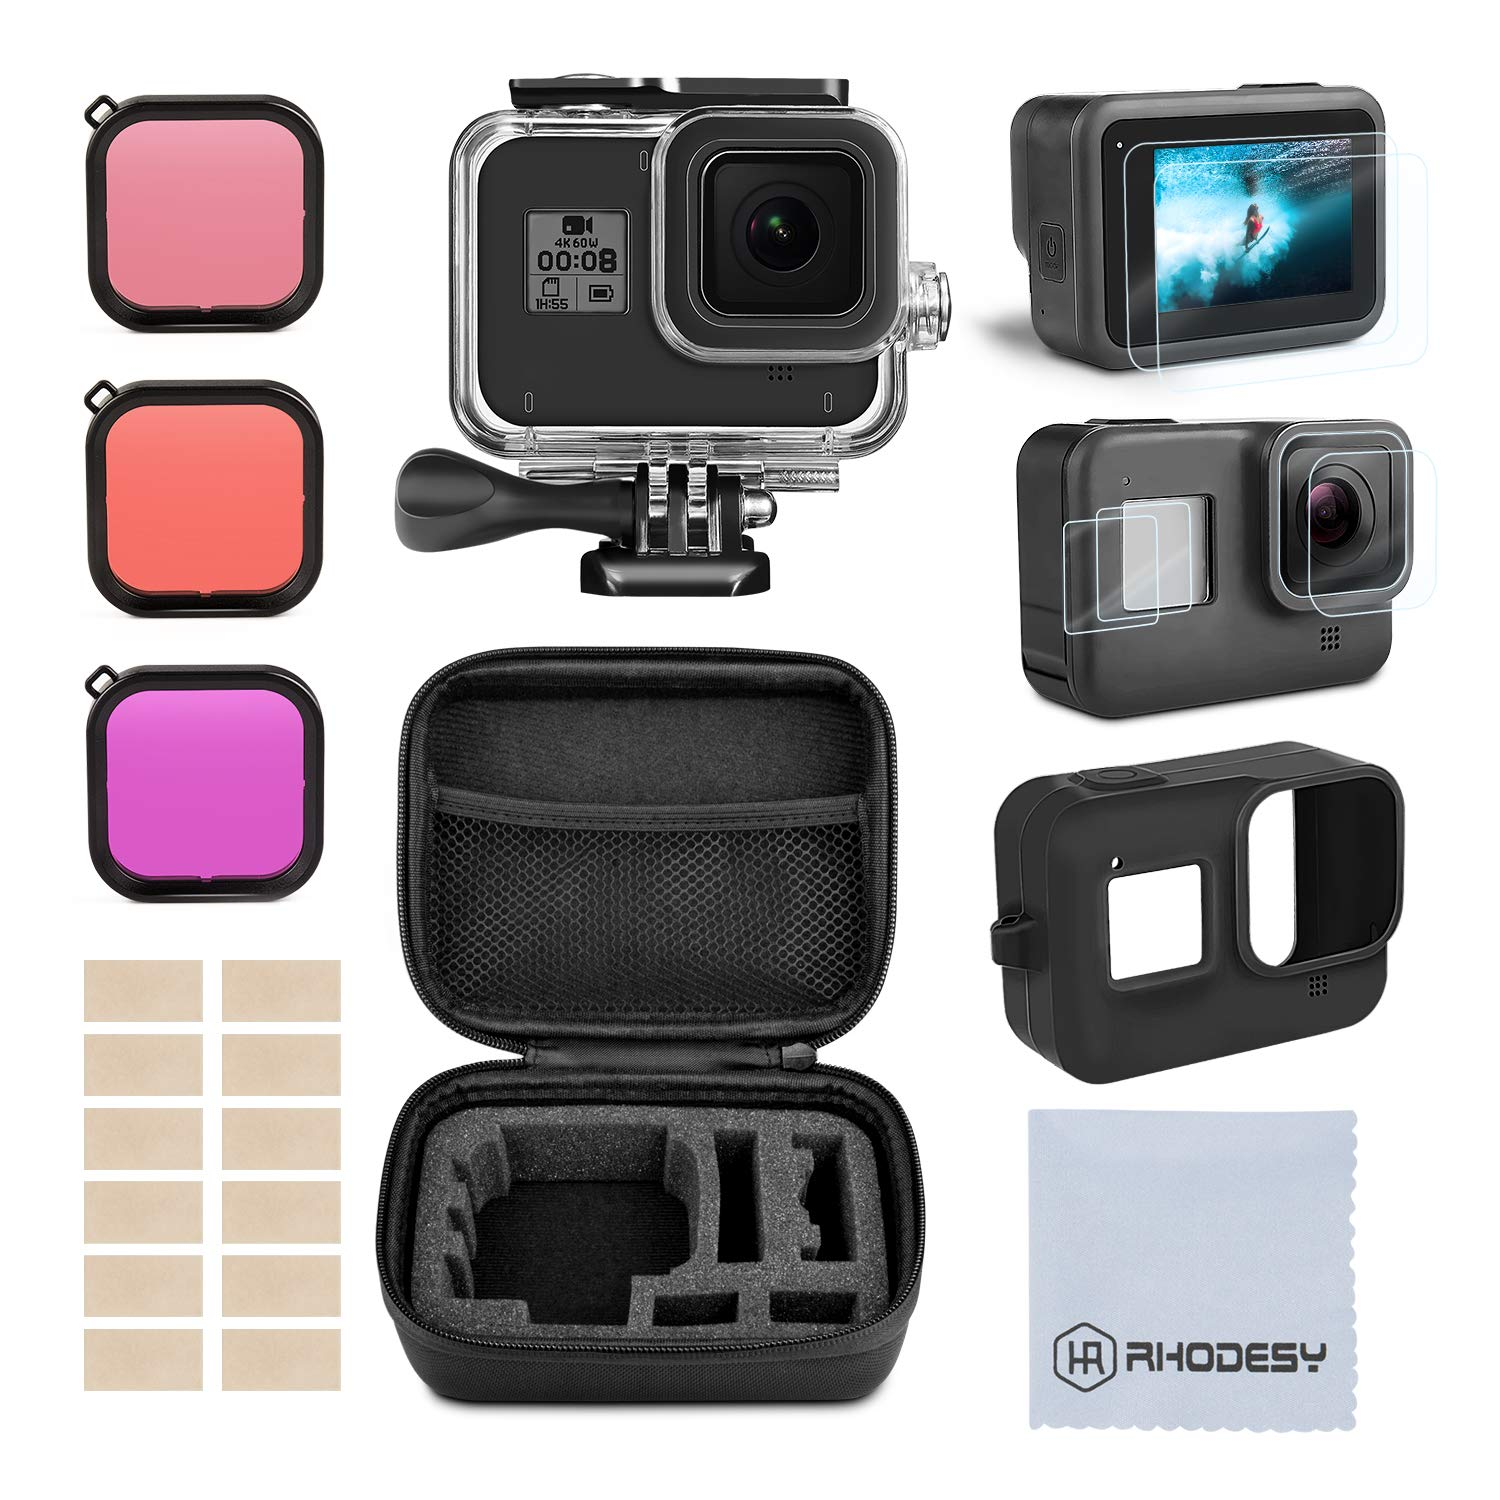 Accessory Kit for Gopro Hero 8, Rhodesy Housing Case and Filter Kit Including Waterproof housing case, Filter, Tempered Glass Screen Protector, Anti-Fog Inserts, Carrying Case for Gopro Hero 8 Camera by Rhodesy